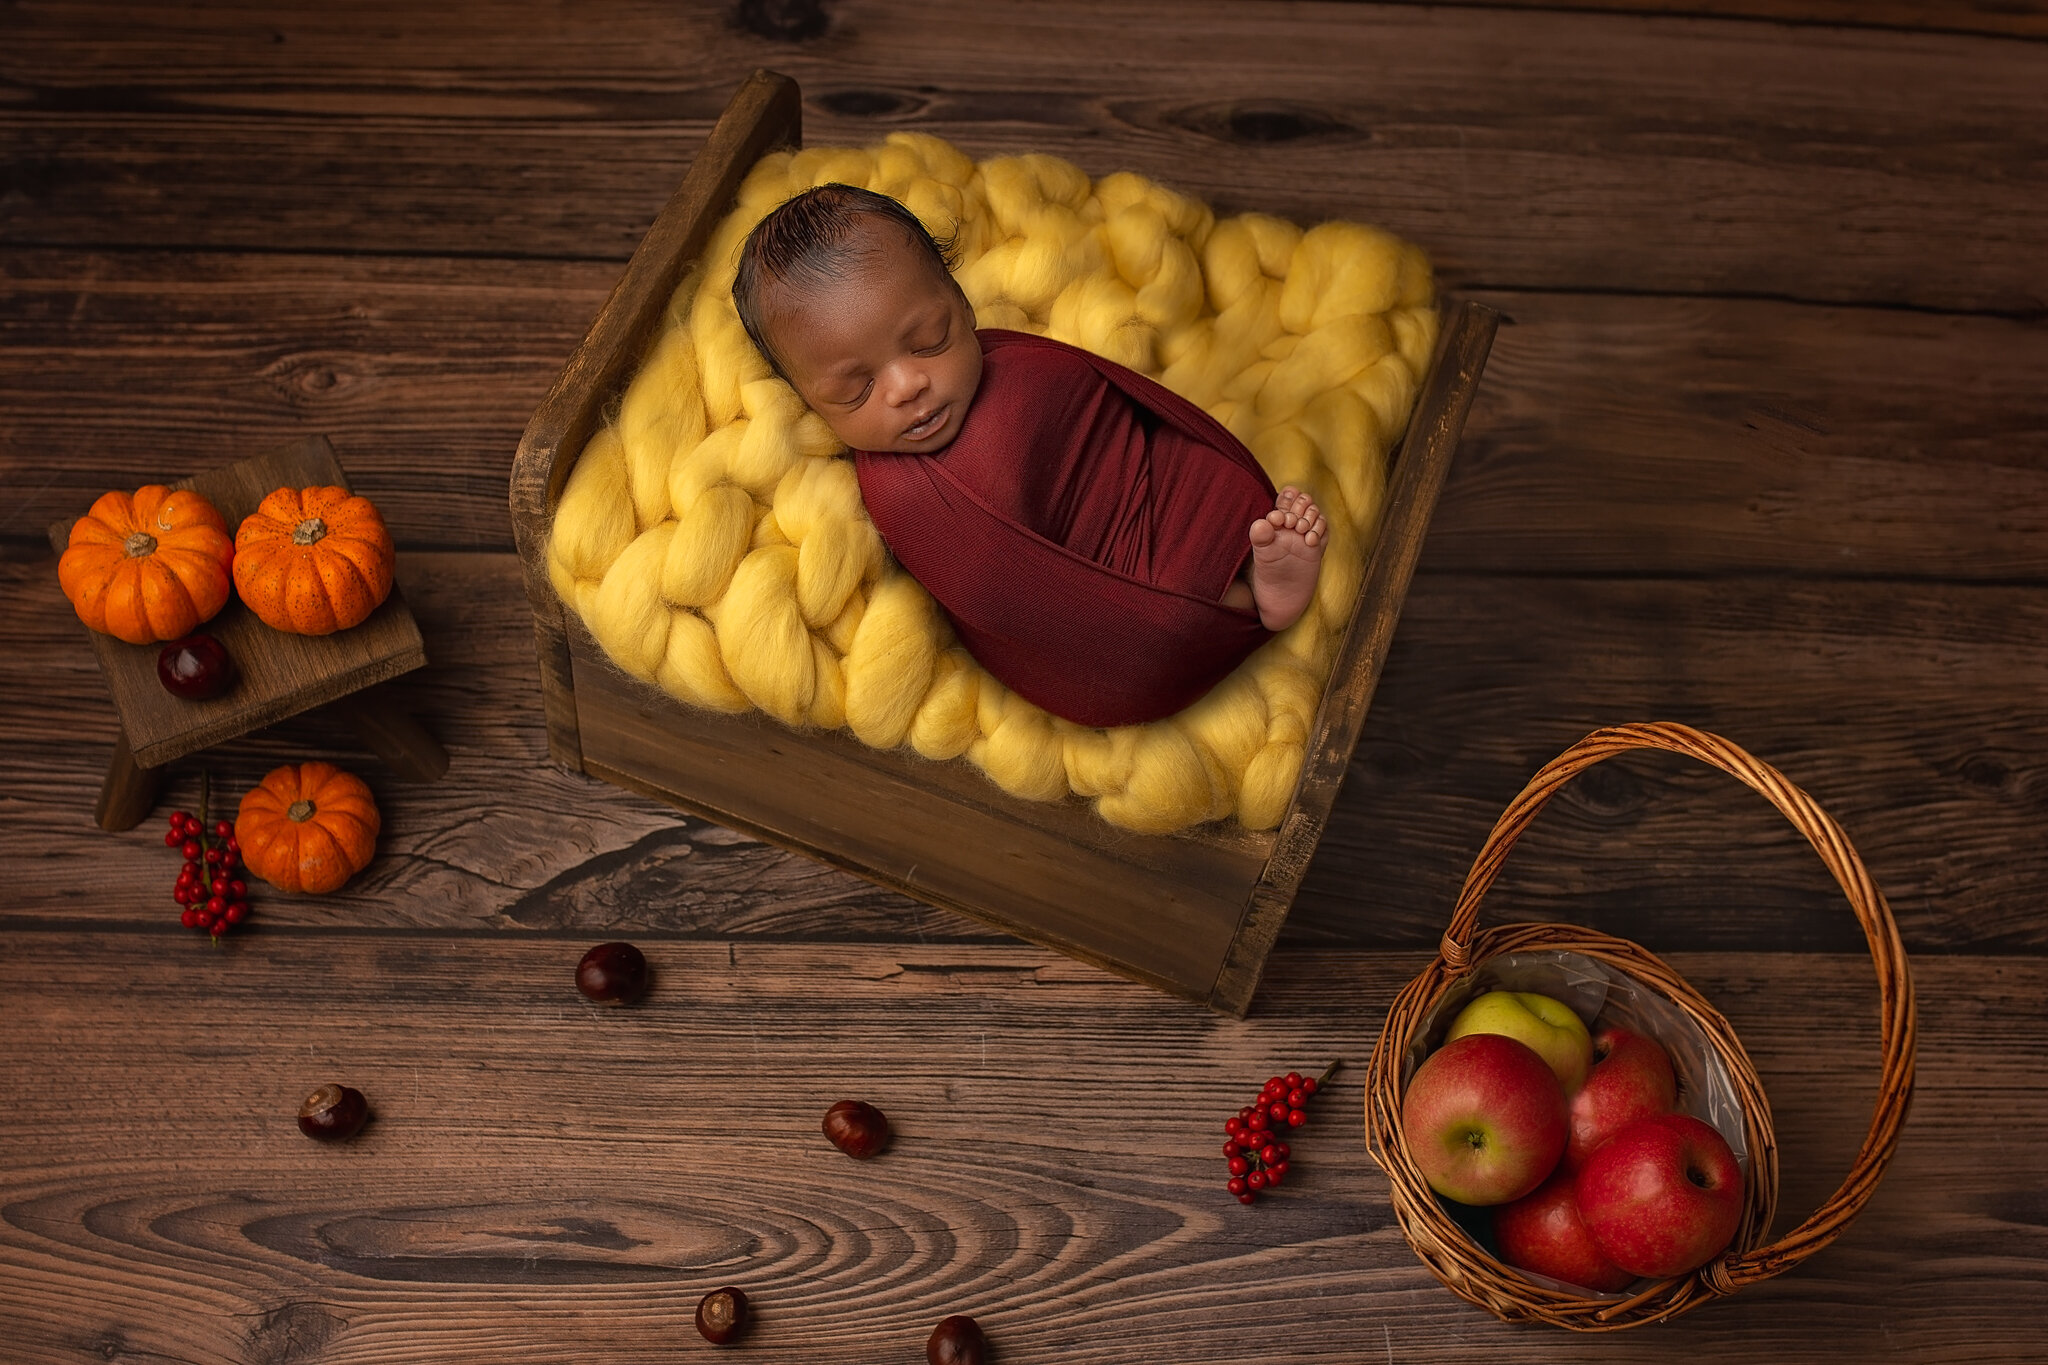 Professional newborn photography Leeds, York, Bradford, Wakefield, Harrogate, Huddersfield: autumn inspired newborn session in Leeds, West Yorkshire